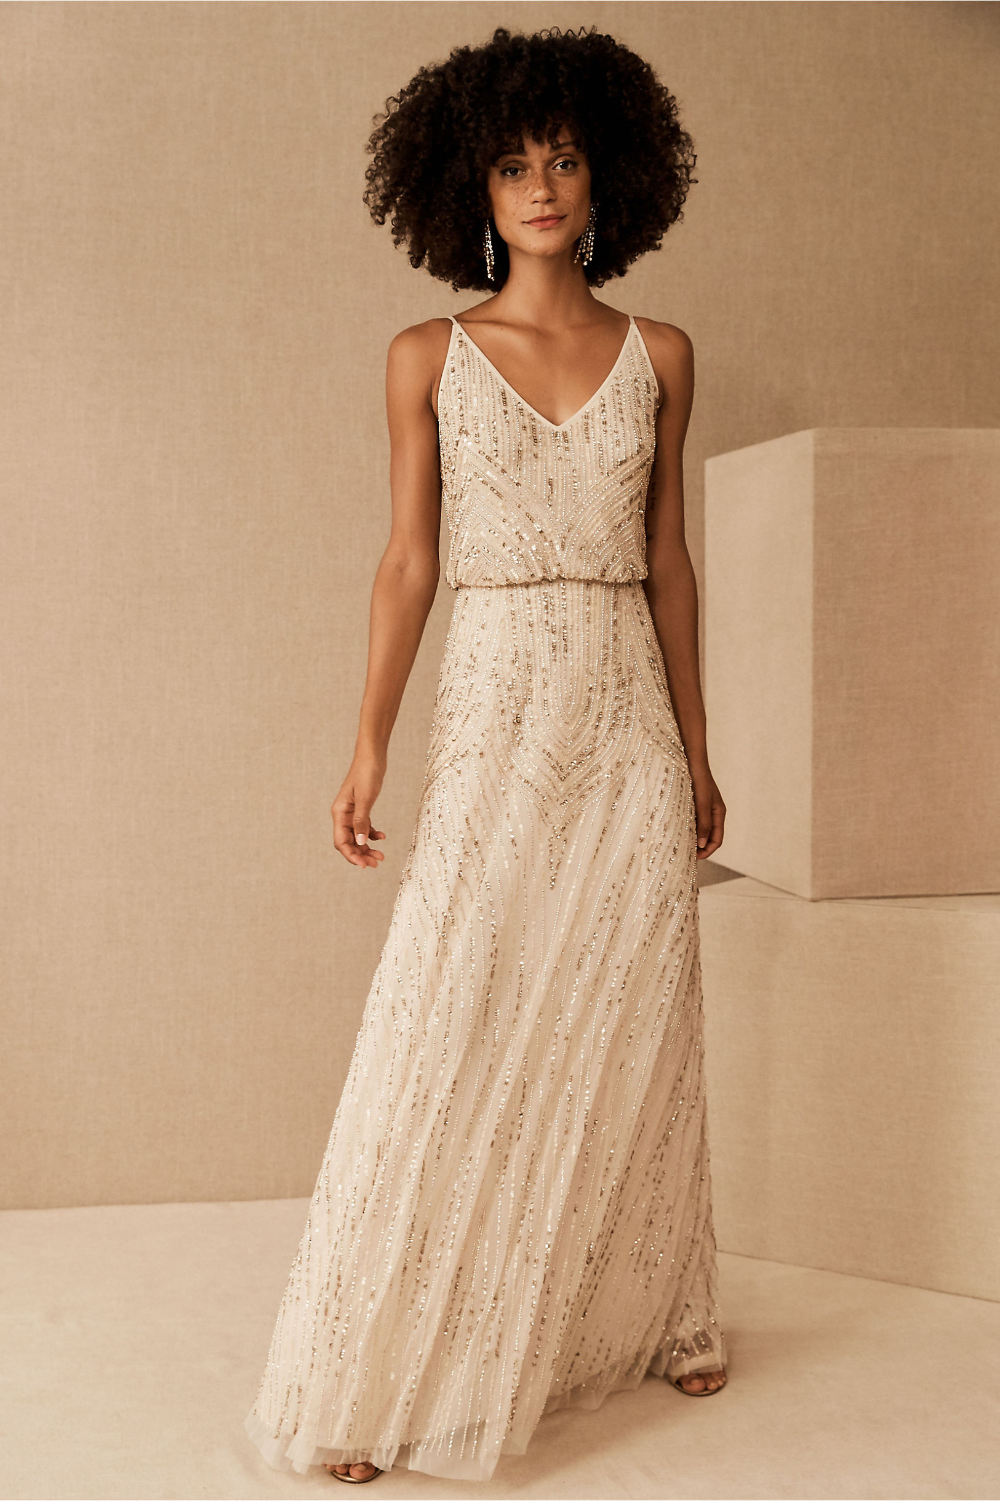 Fidelia Beaded Maxi Dress In 2020 Beaded Bridesmaid Dress Ivory Bridesmaid Dresses Beaded Maxi Dress